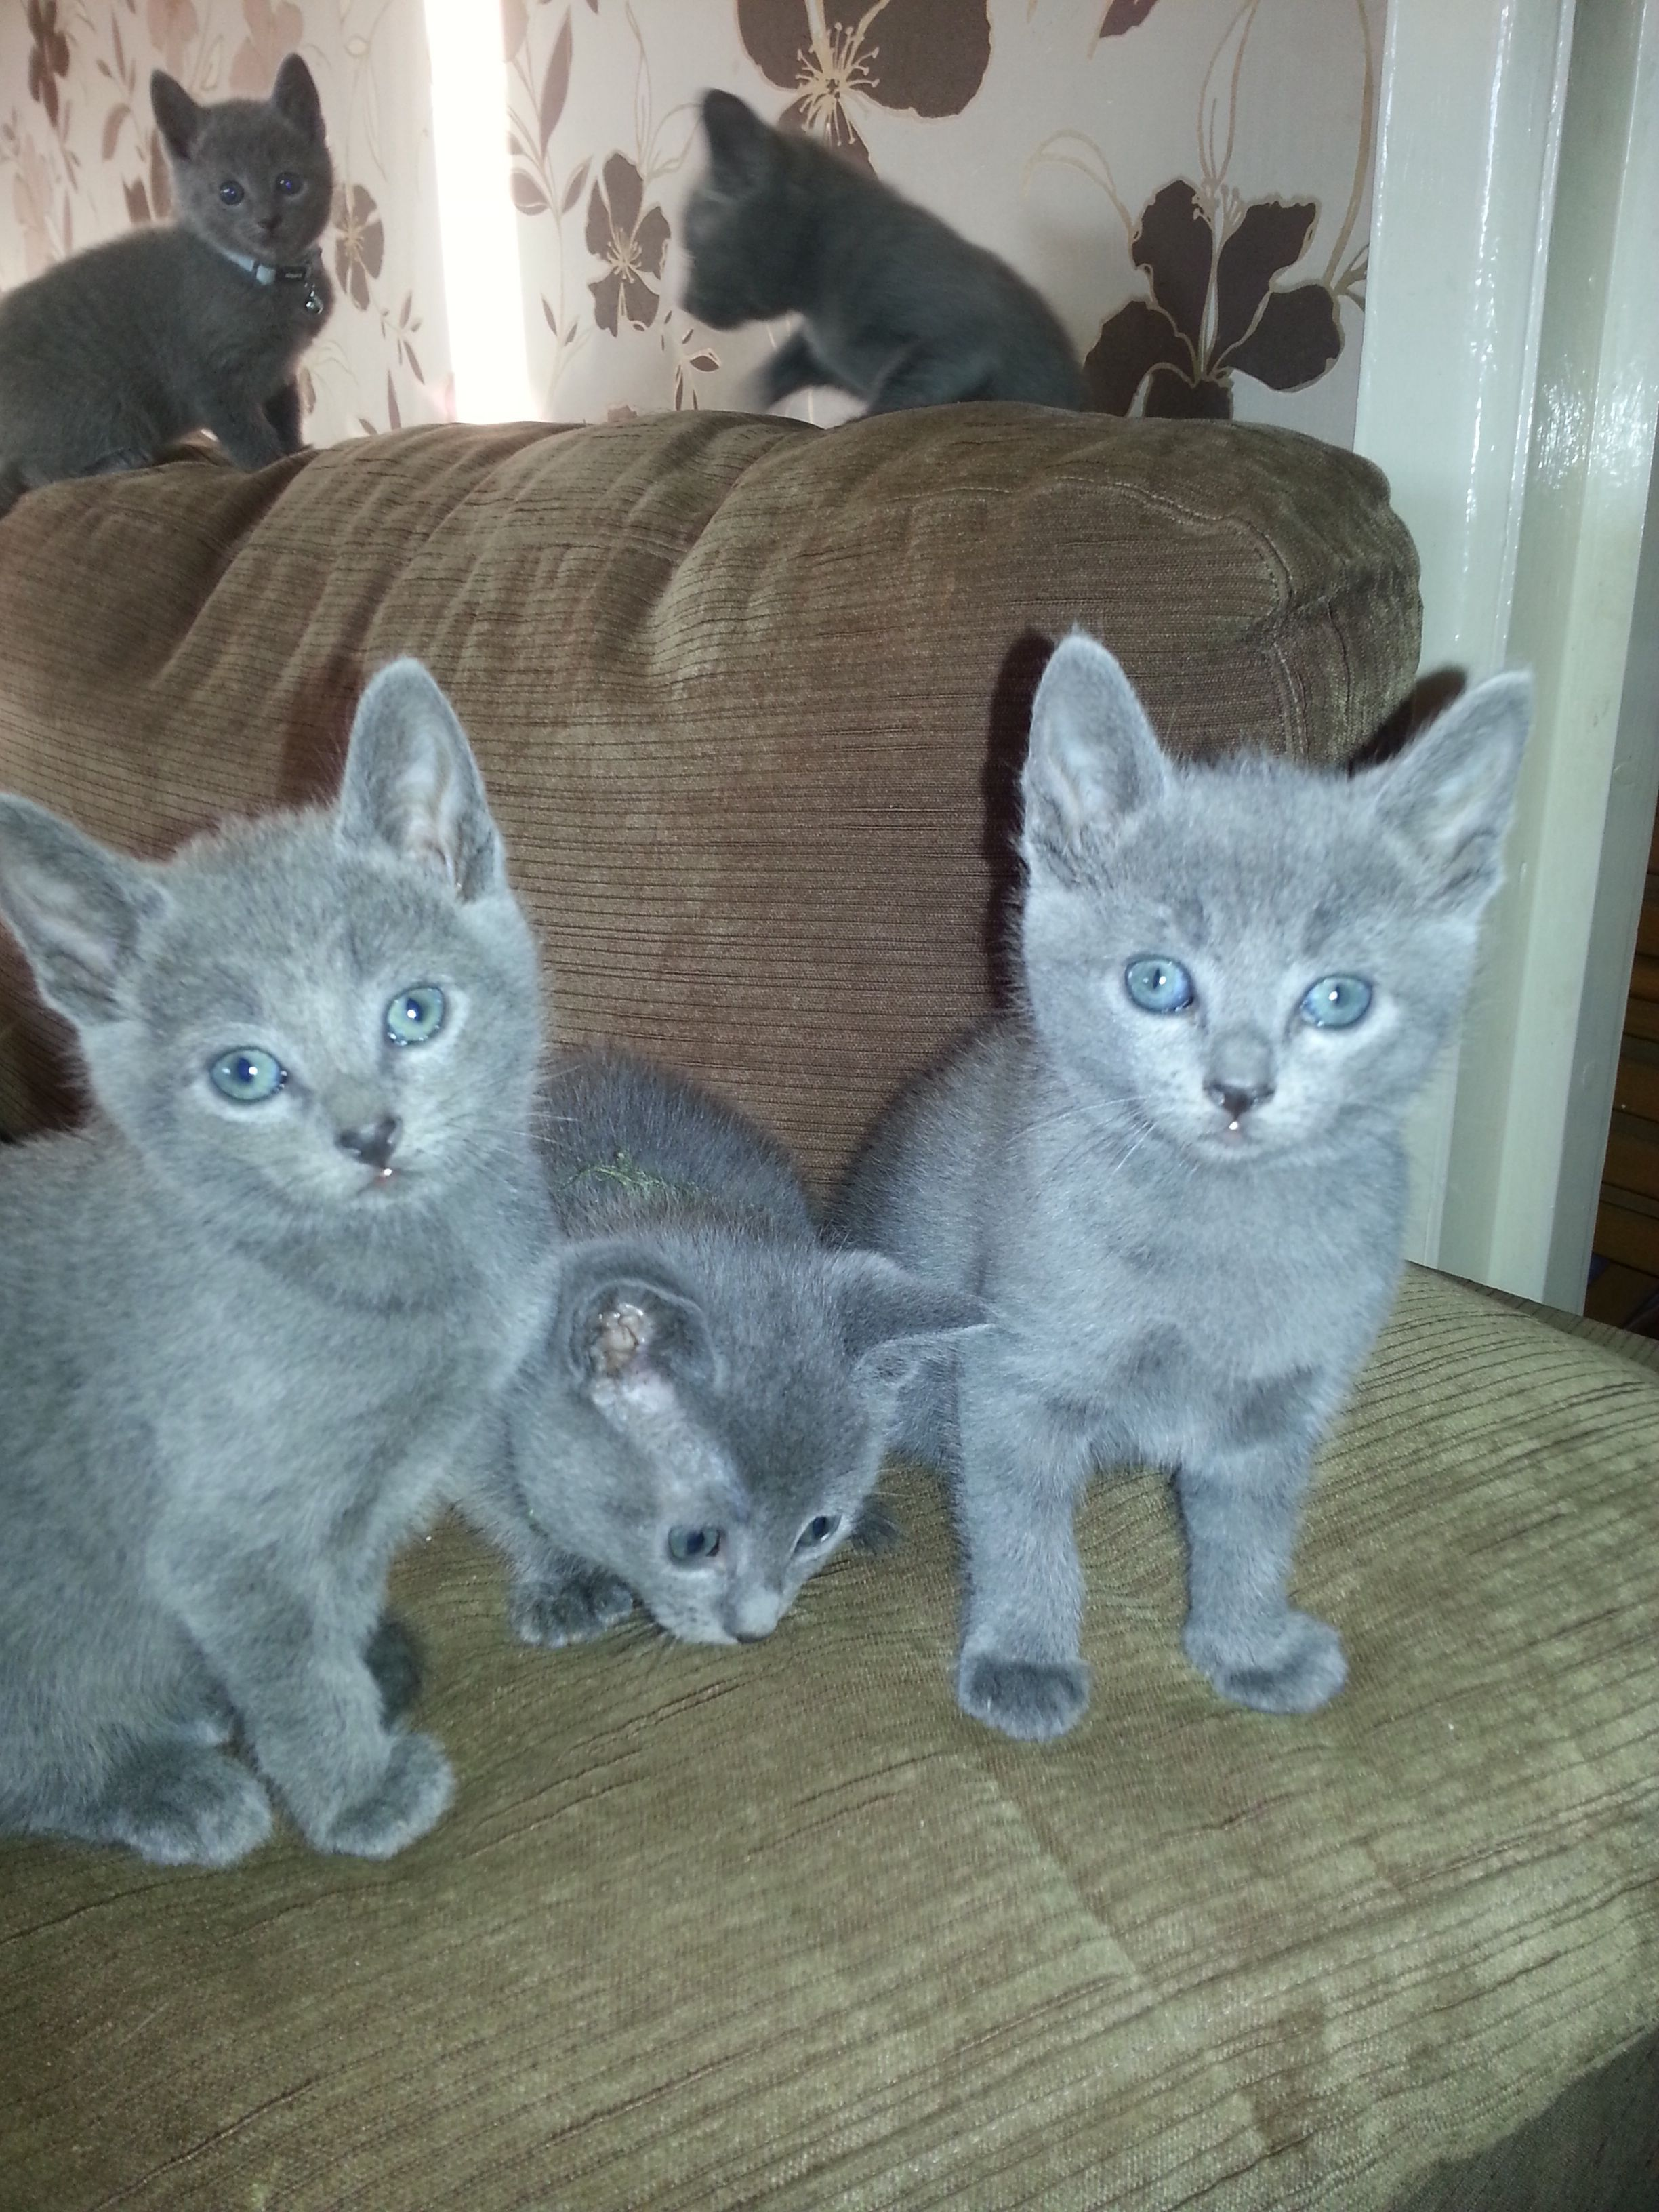 Purebred Russian Blue Kittens For Sale Near Me : purebred, russian, kittens, Purebred, Russian, Kittens